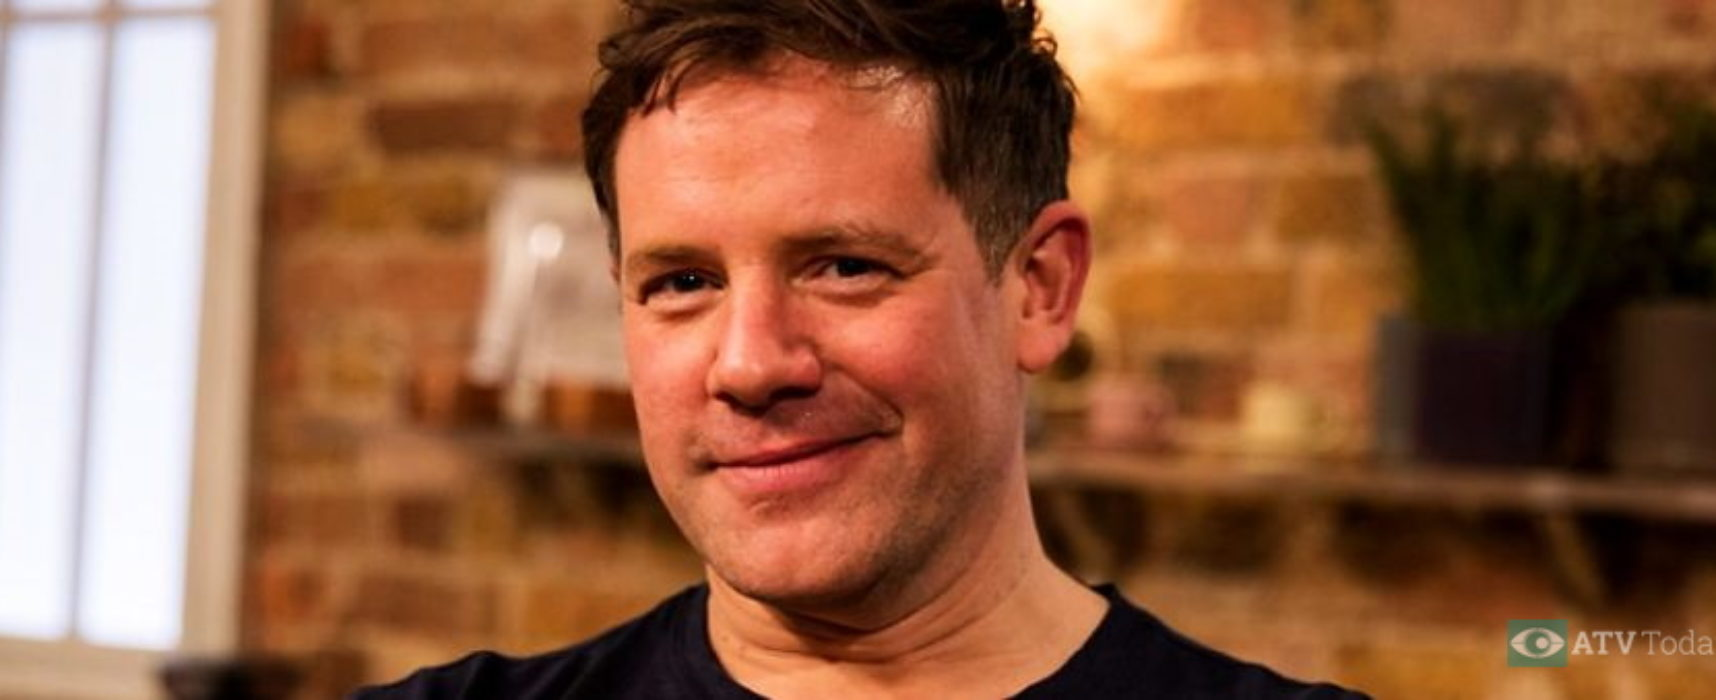 Daily version of Saturday Kitchen to launch on BBC One